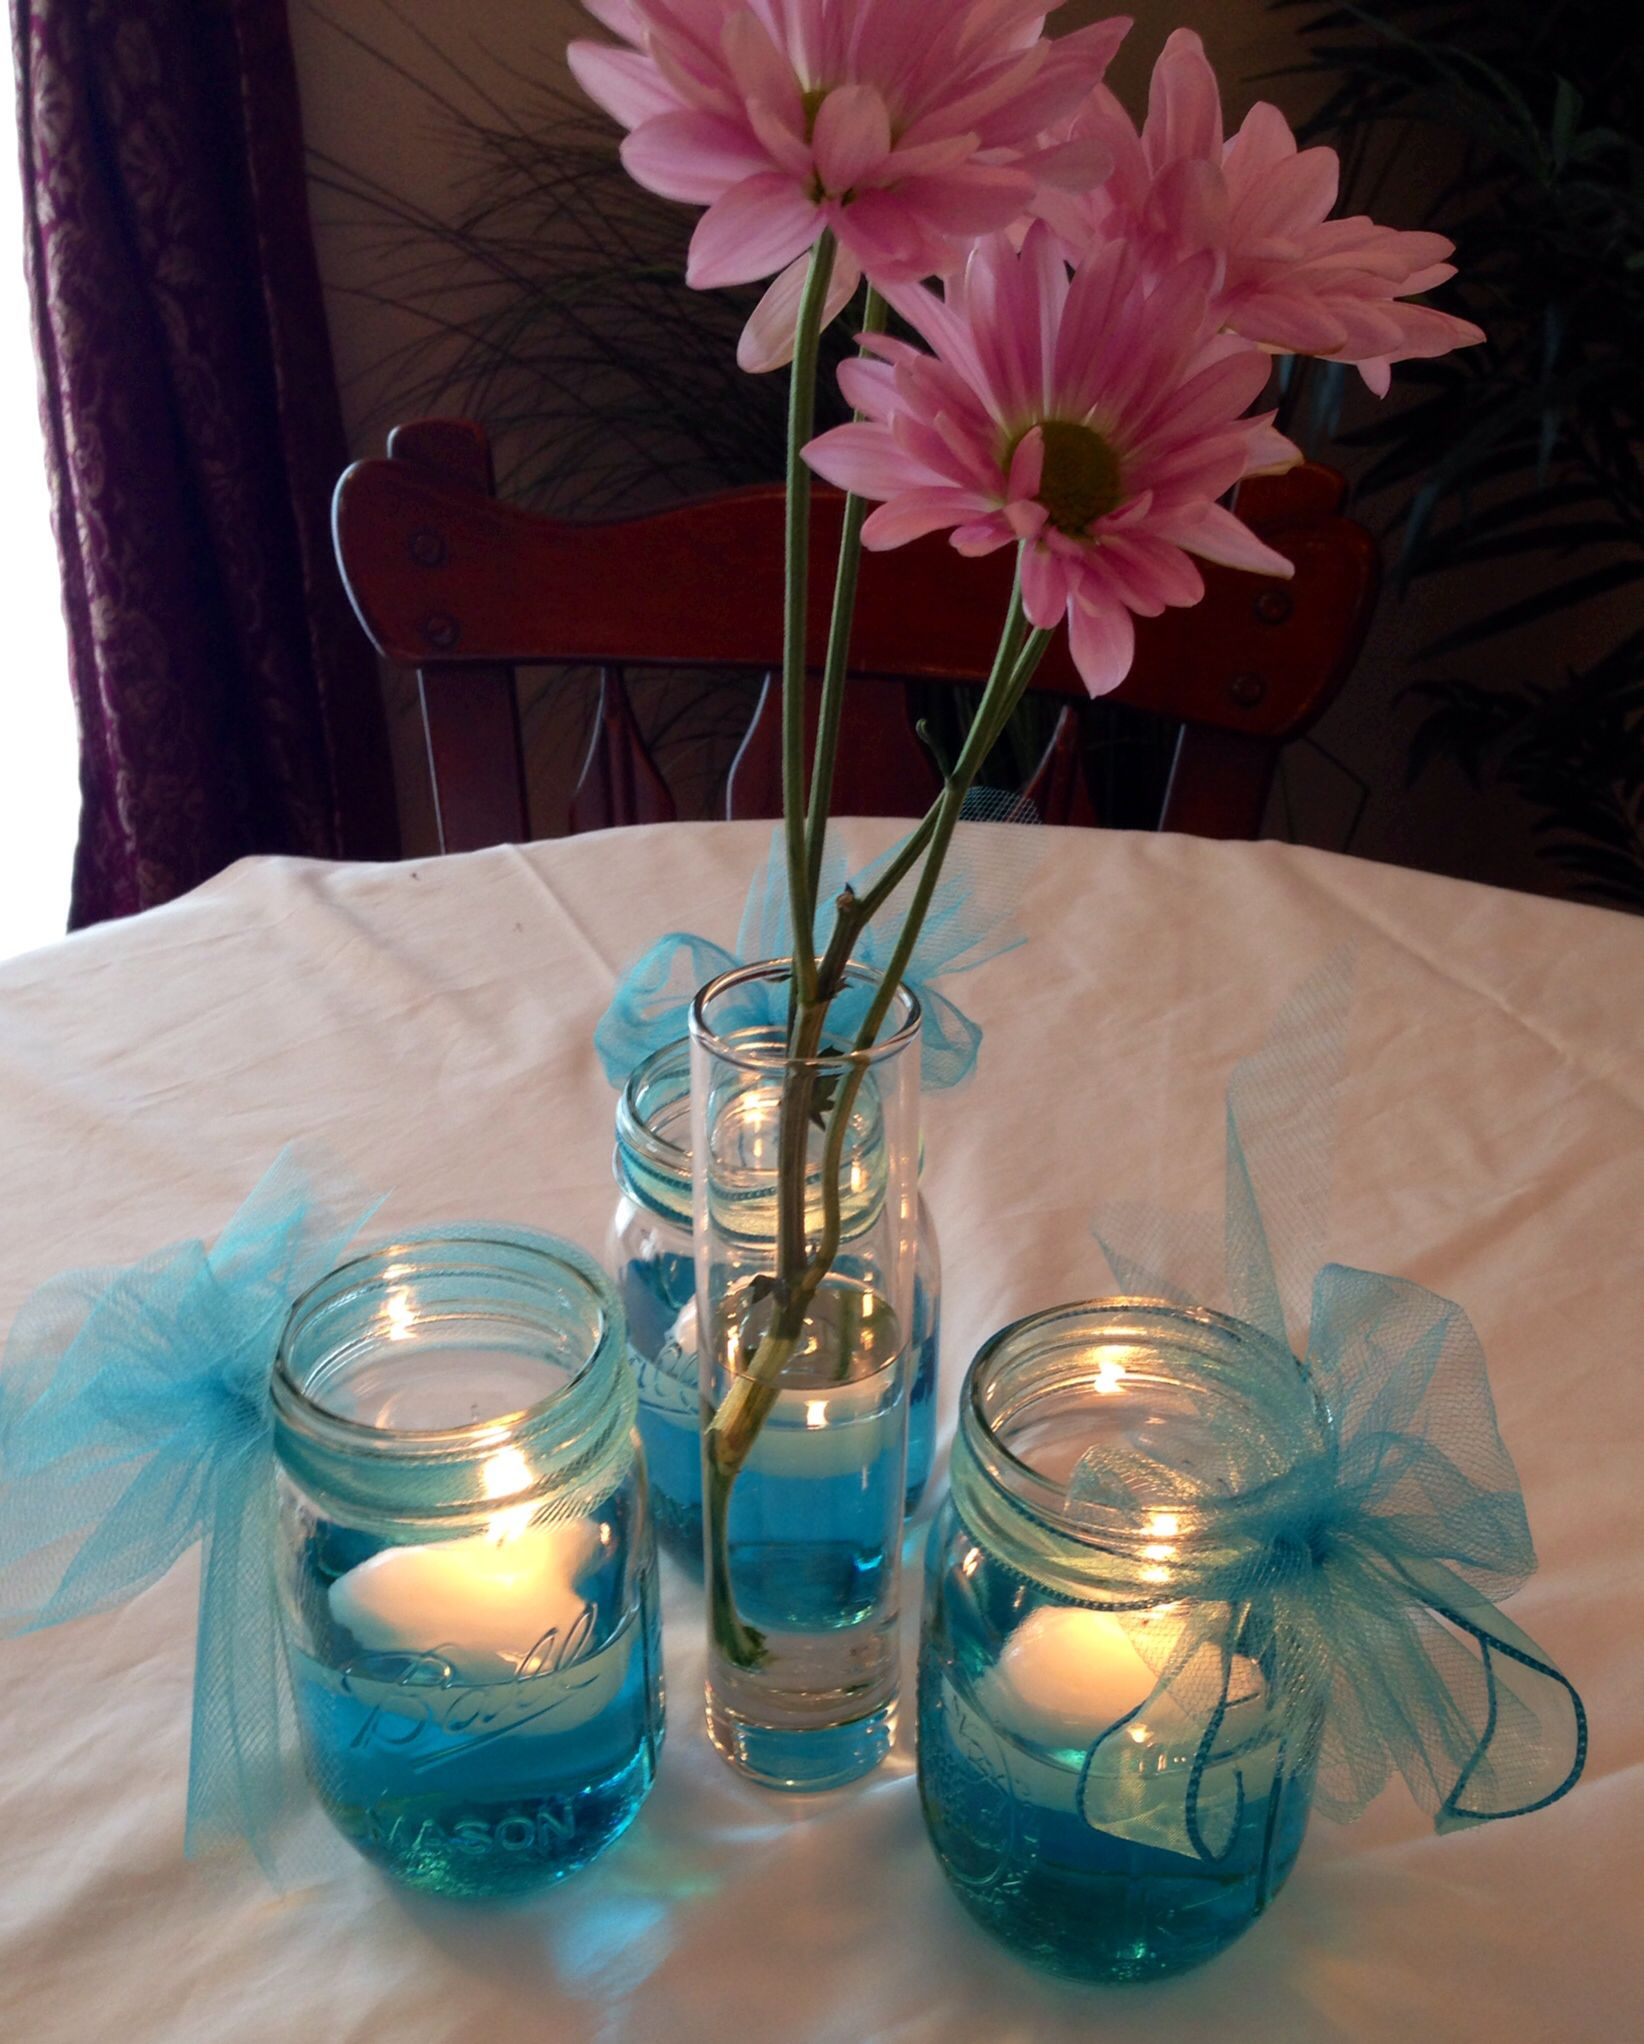 Wedding Or Baby Shower Table Decorations: Mason Jar With 1/2 Filled With  Water